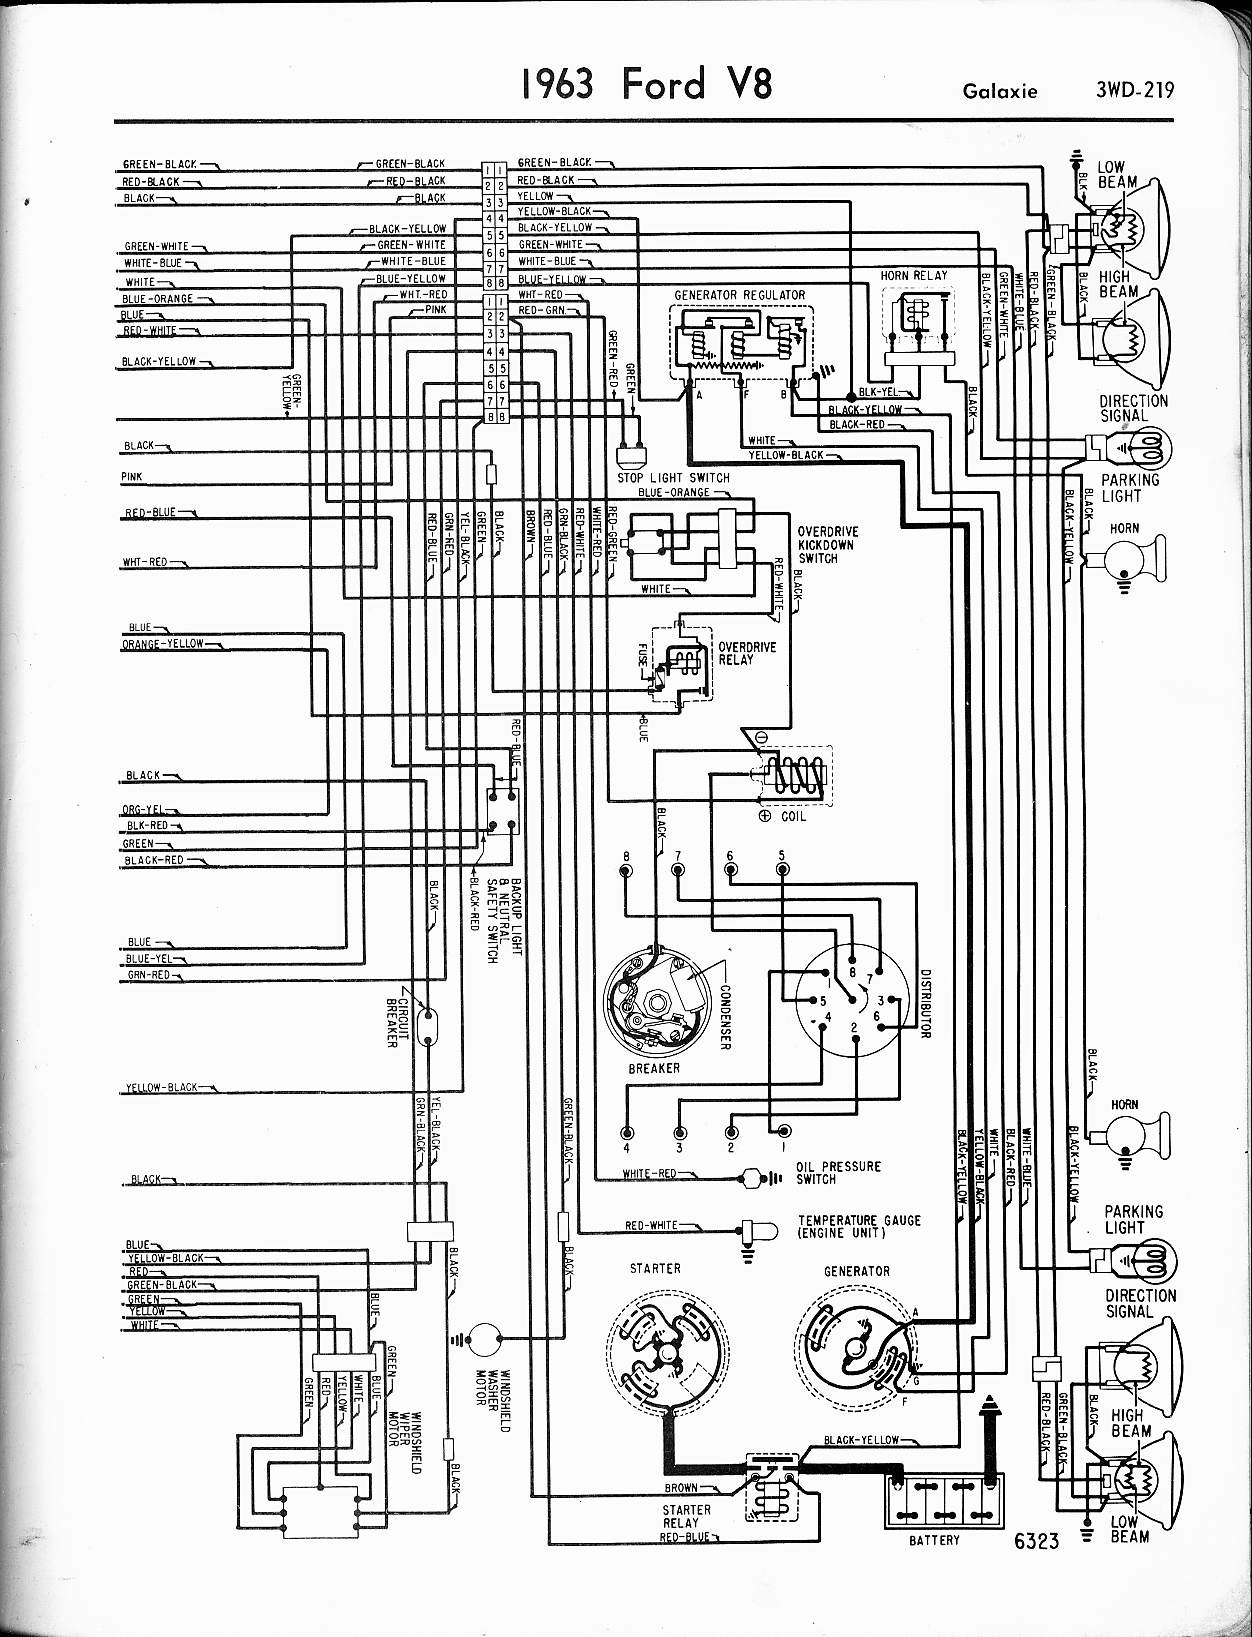 2009 Subaru Forester Power Window Wiring Diagram 1964 Lincoln Vacuum Auto Electrical 1969 Ford Galaxie Html